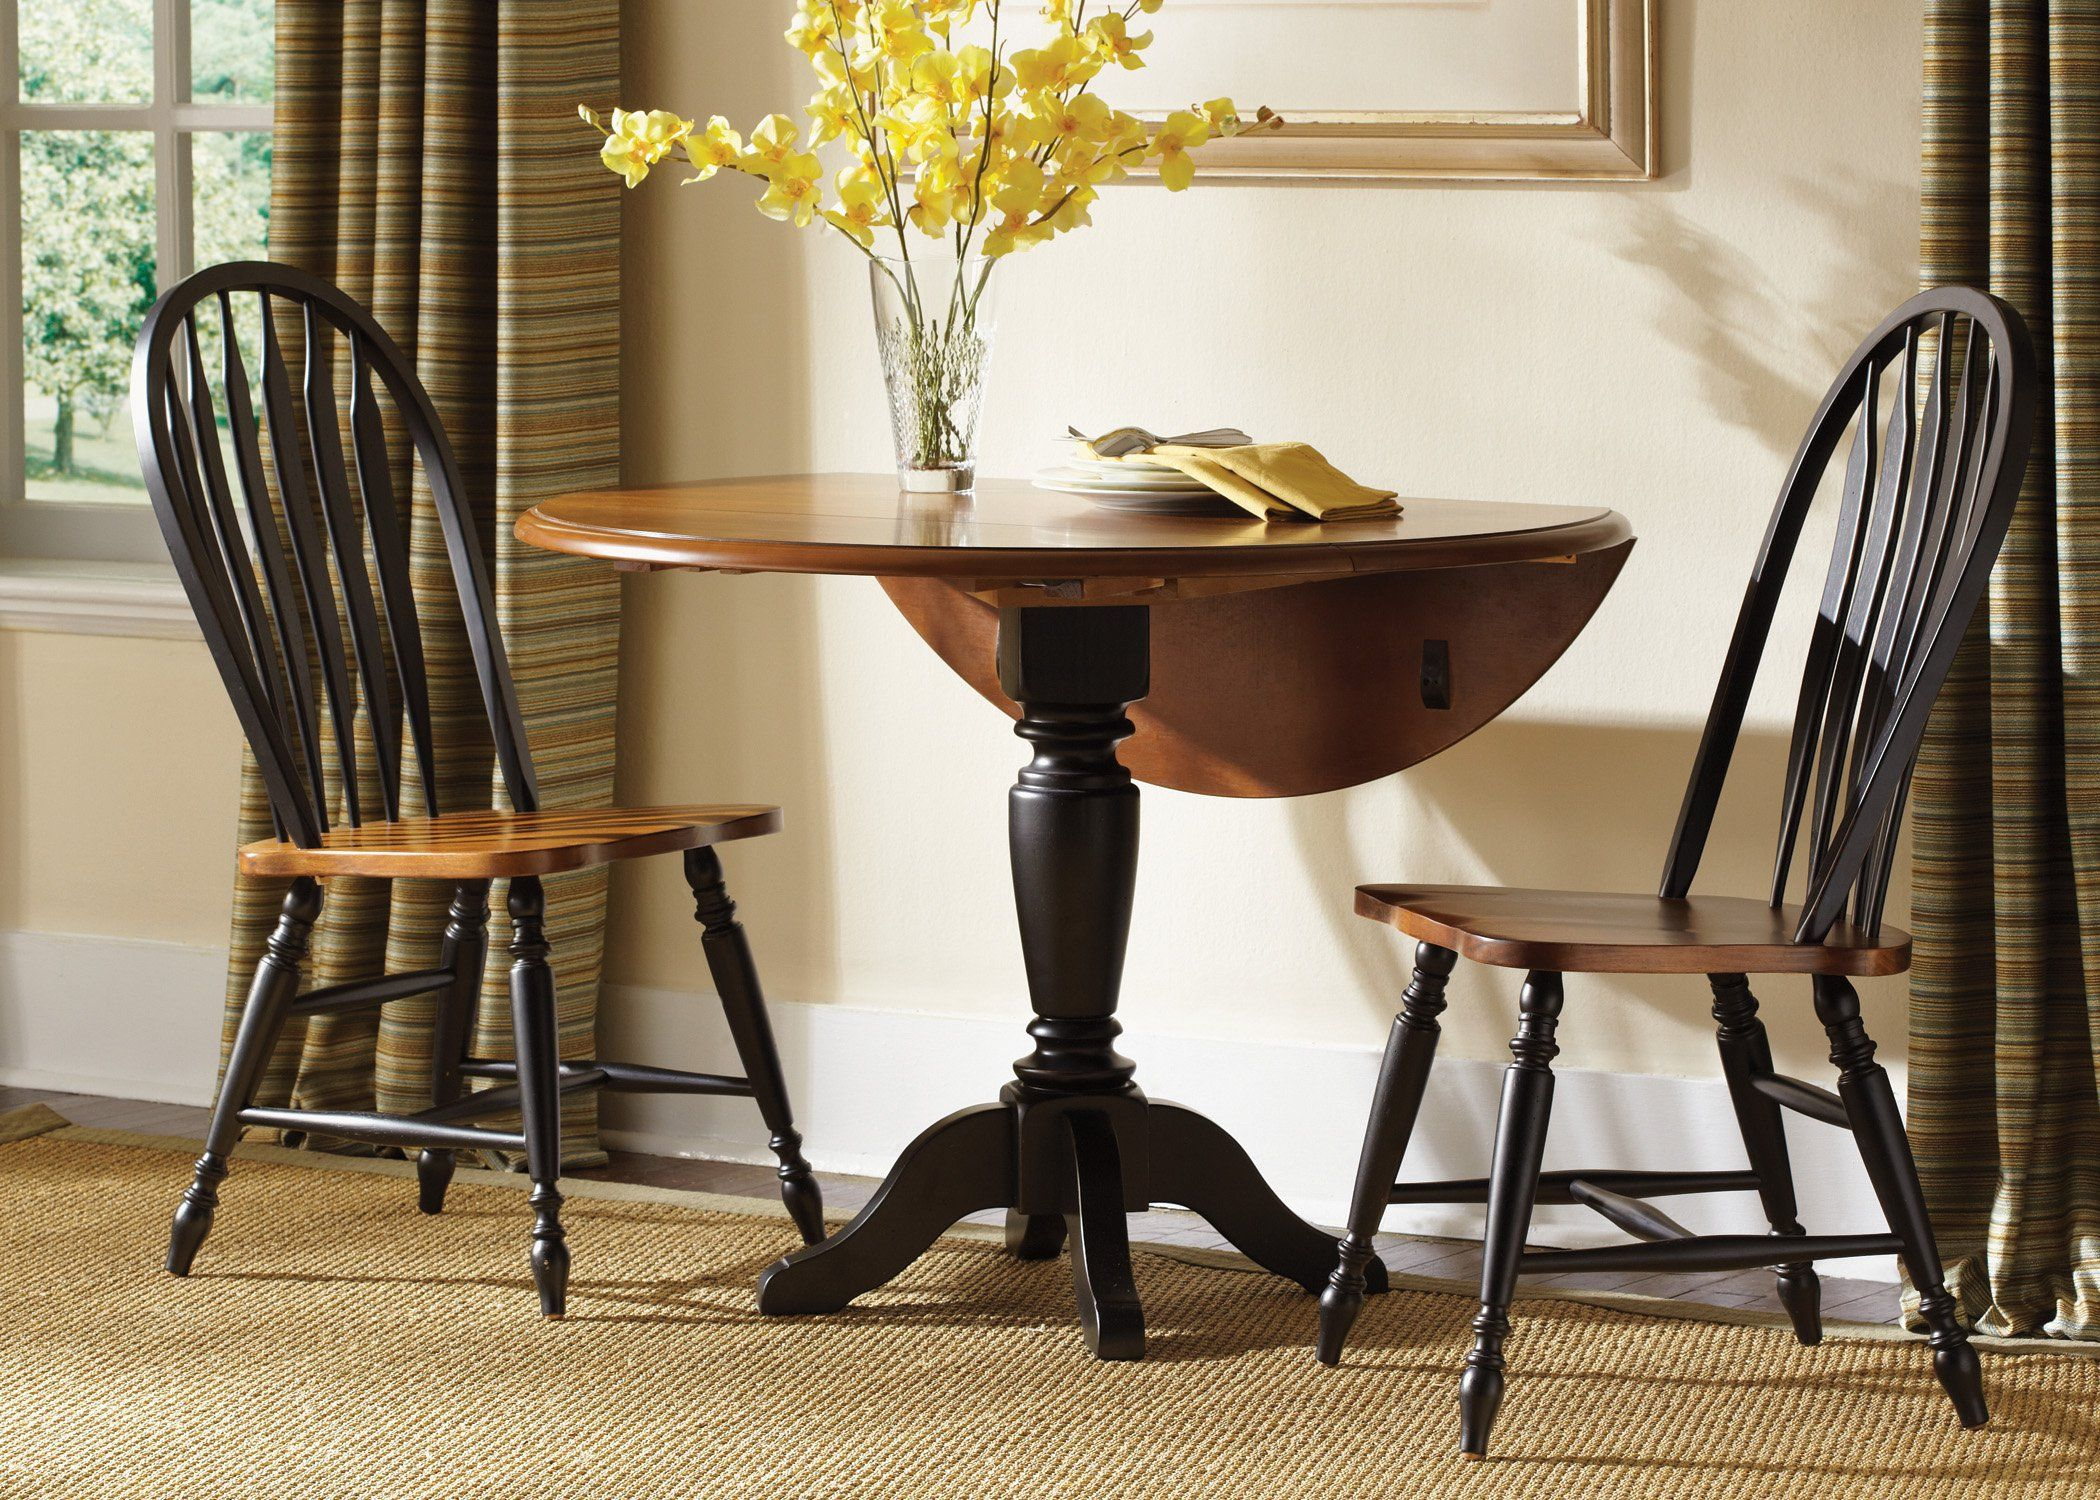 Liberty Furniture Low Country Black 3 Pc Drop Leaf Table Set With Windsor Chairs Lfi1759 Drop Leaf Table Dining Table Dining Table Chairs Round drop leaf dining tables